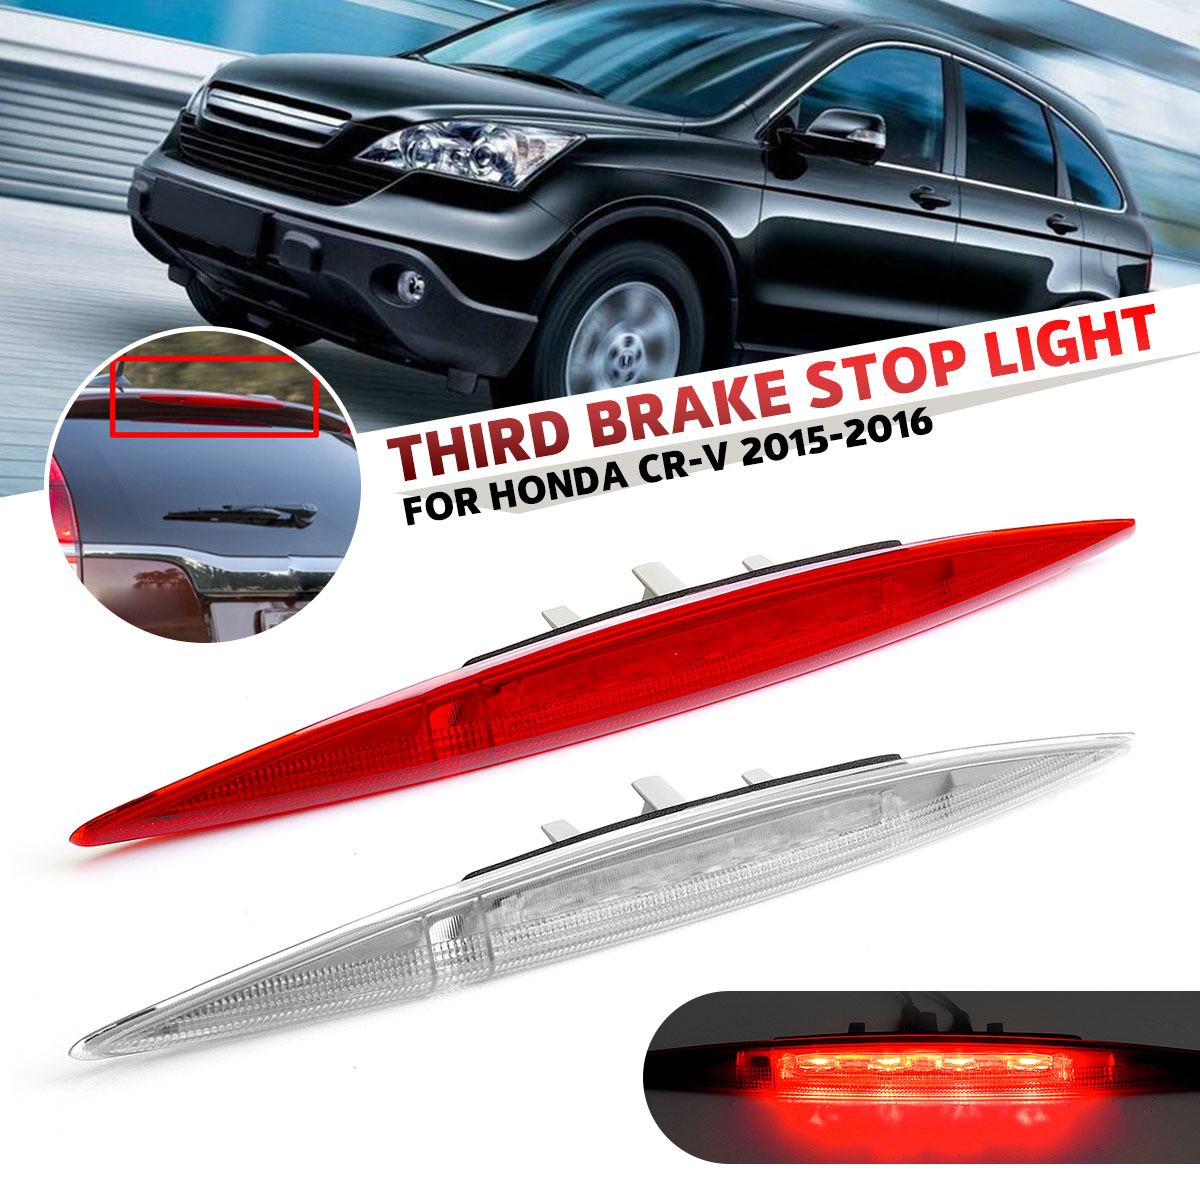 White / Red High Positioned Mounted Additional Car Rear Third Brake Light Stop Lamp For Honda CRV CR V 2012 2013 2014 2015 2016